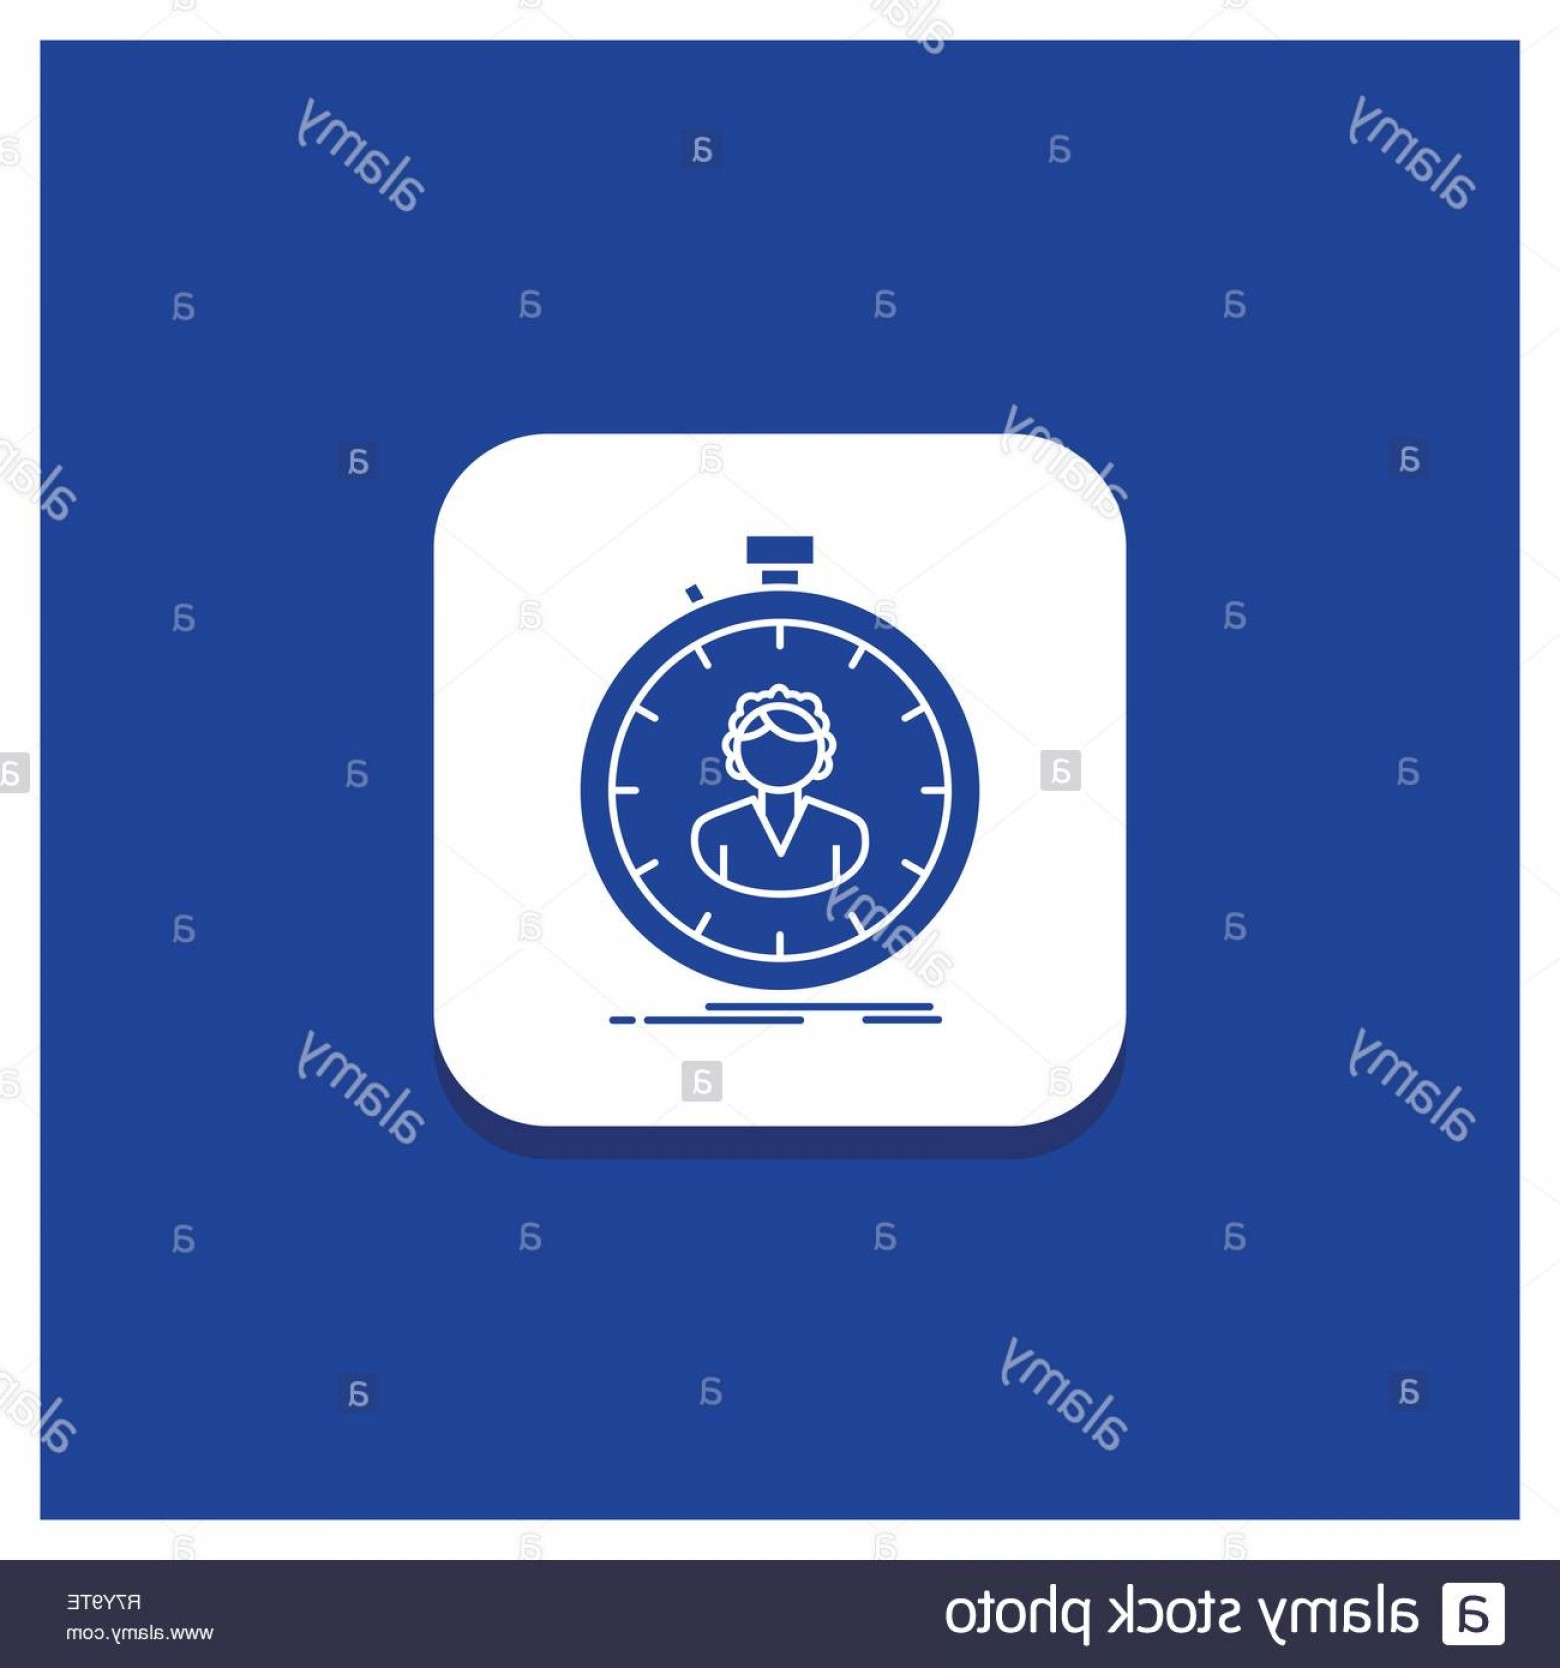 Stop Watch Vector Ai File: Blue Round Button For Fast Speed Stopwatch Timer Girl Glyph Icon Image